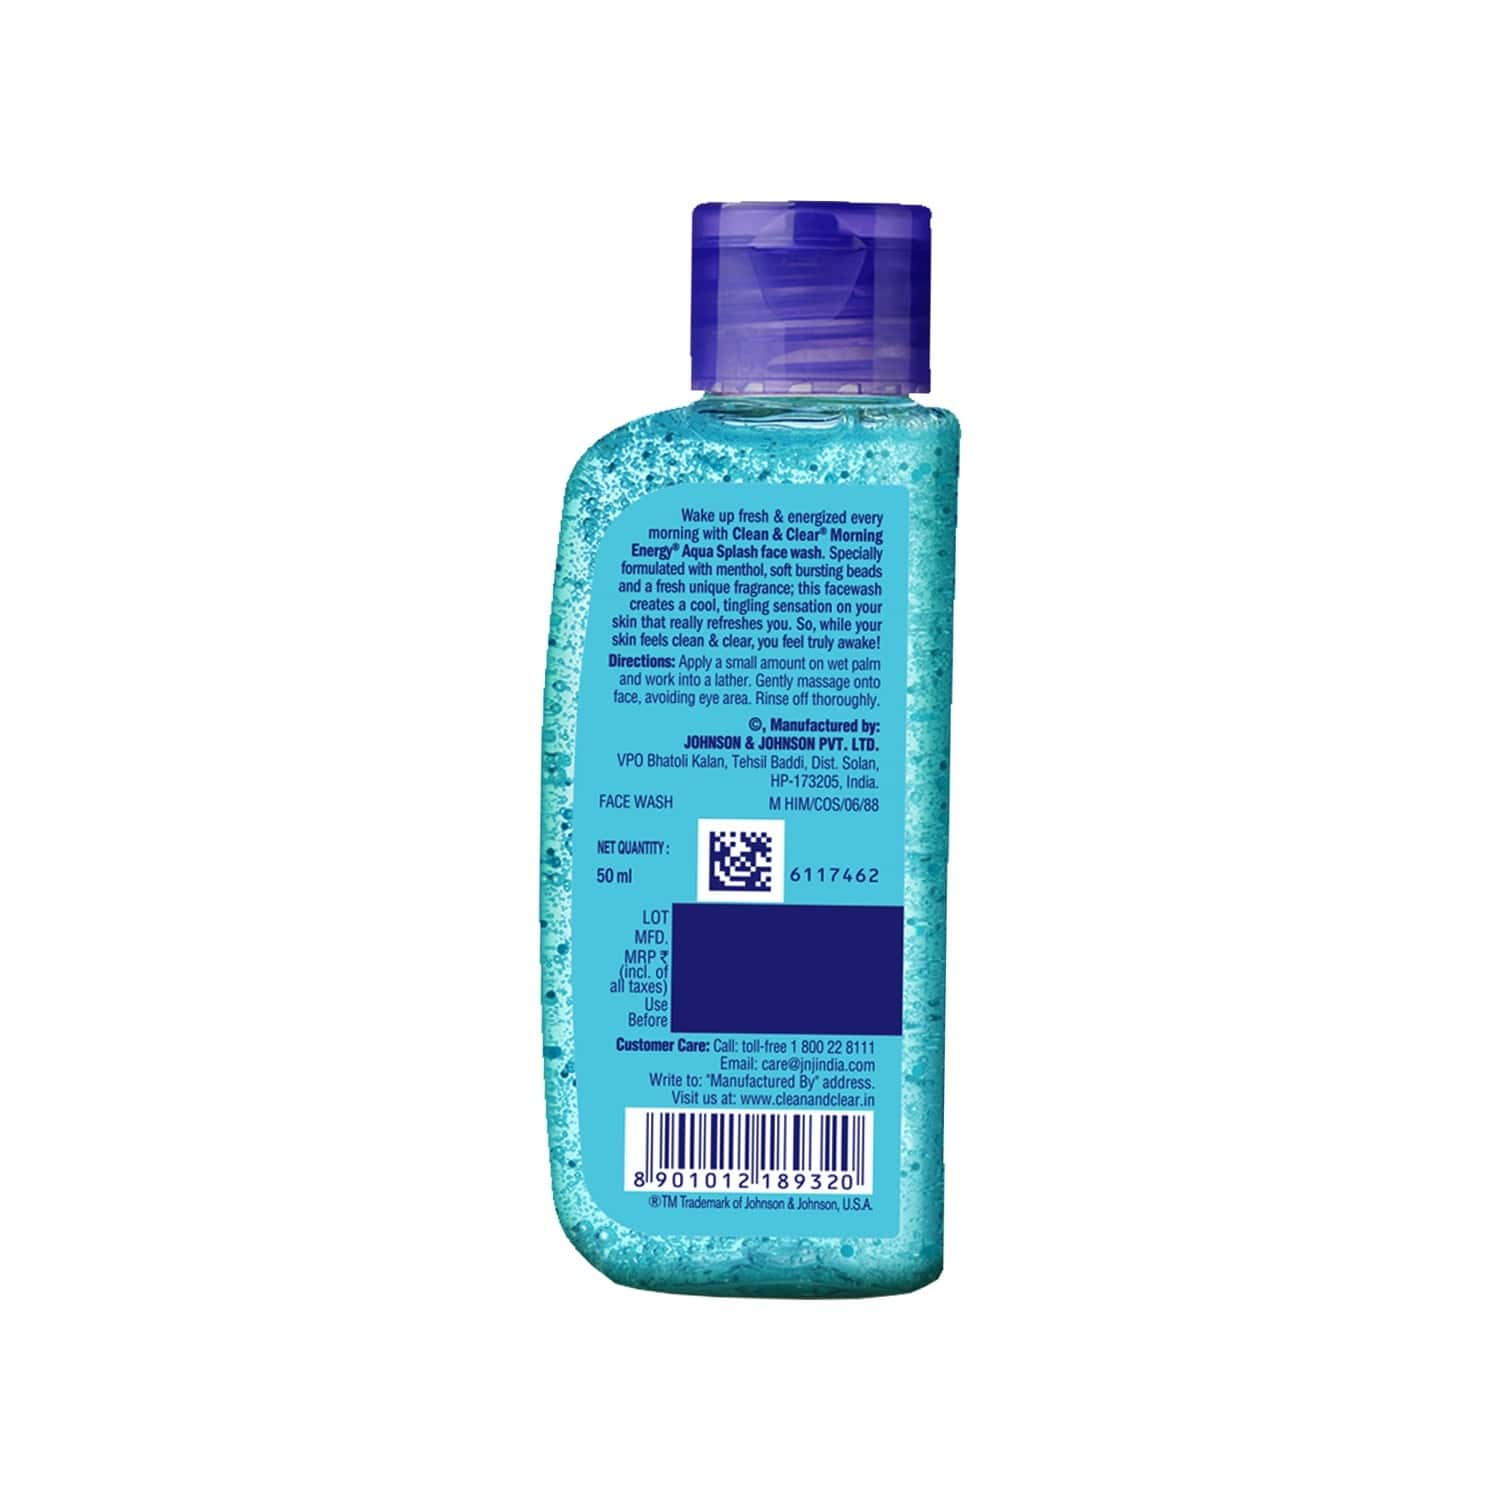 C&c Morning Energy Aqua Splash 50ml